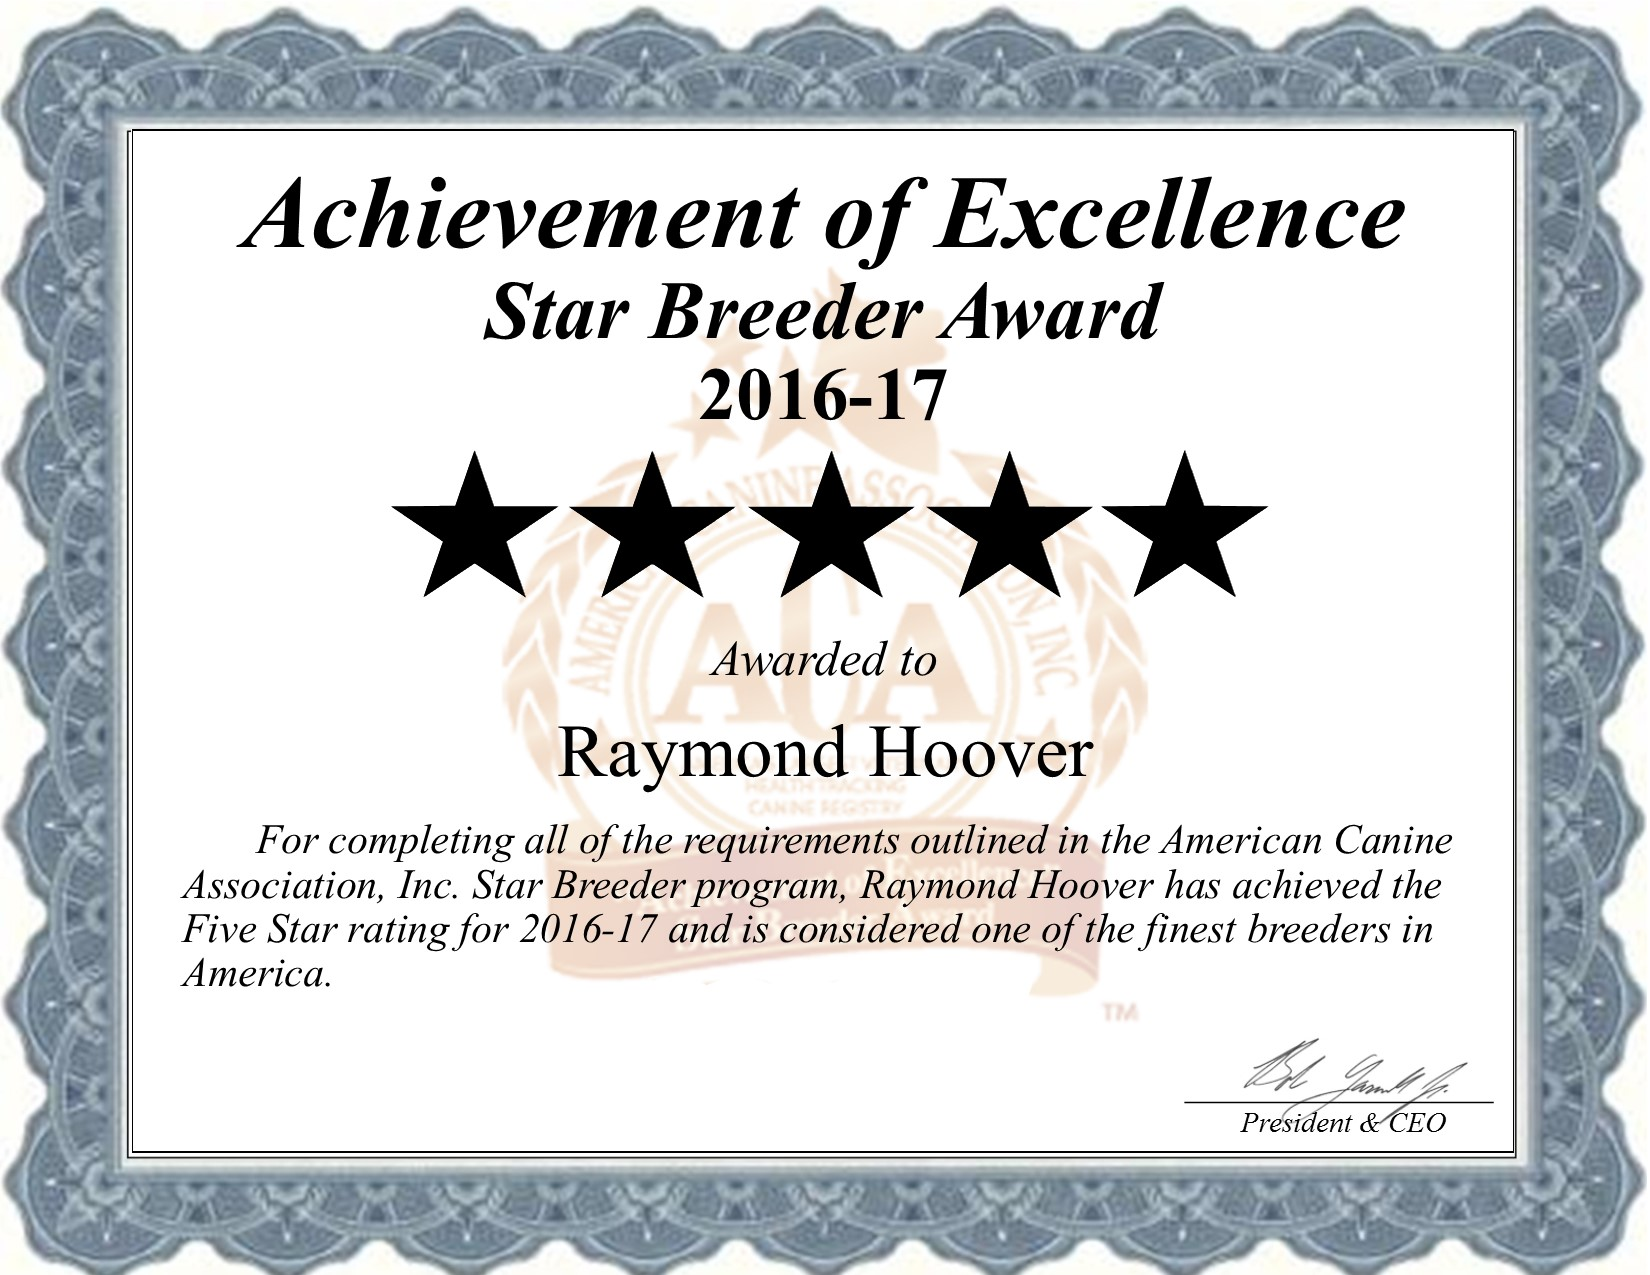 raymond, hoover dog, breeder, certificate, raymond-hoover, dog-breeder, kennel, star breeder, star breeder, 5 star, dundee, ny, new-york, county, usda, puppy, puppies, ACA, ICA